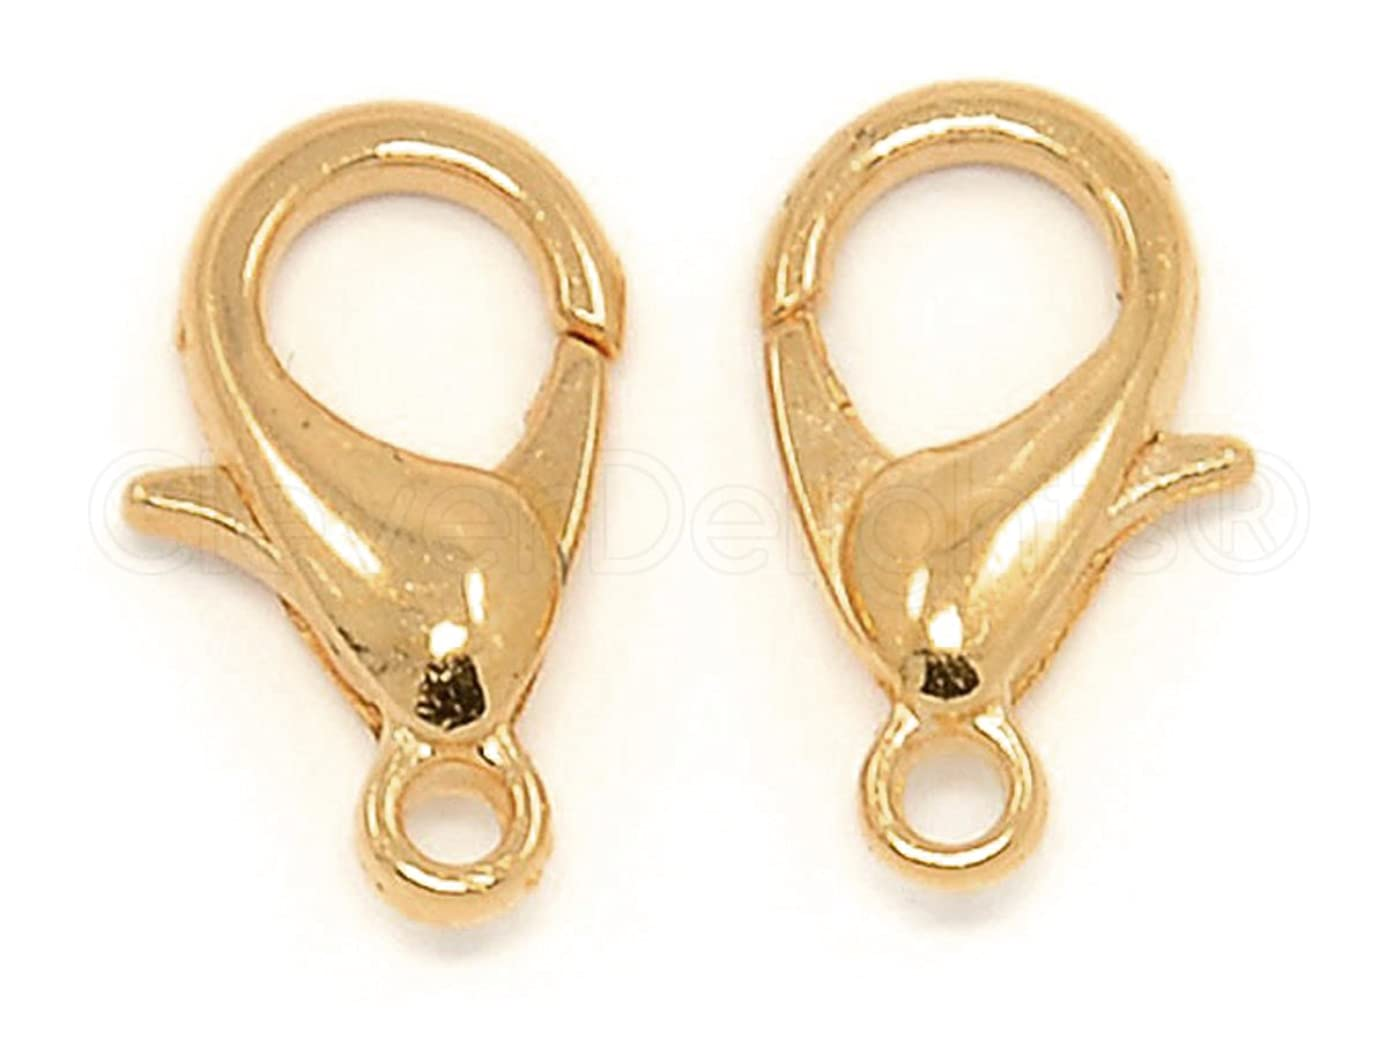 CleverDelights 100 Lobster Clasps - 12x6mm - Champagne Gold Color - Jewelry Findings